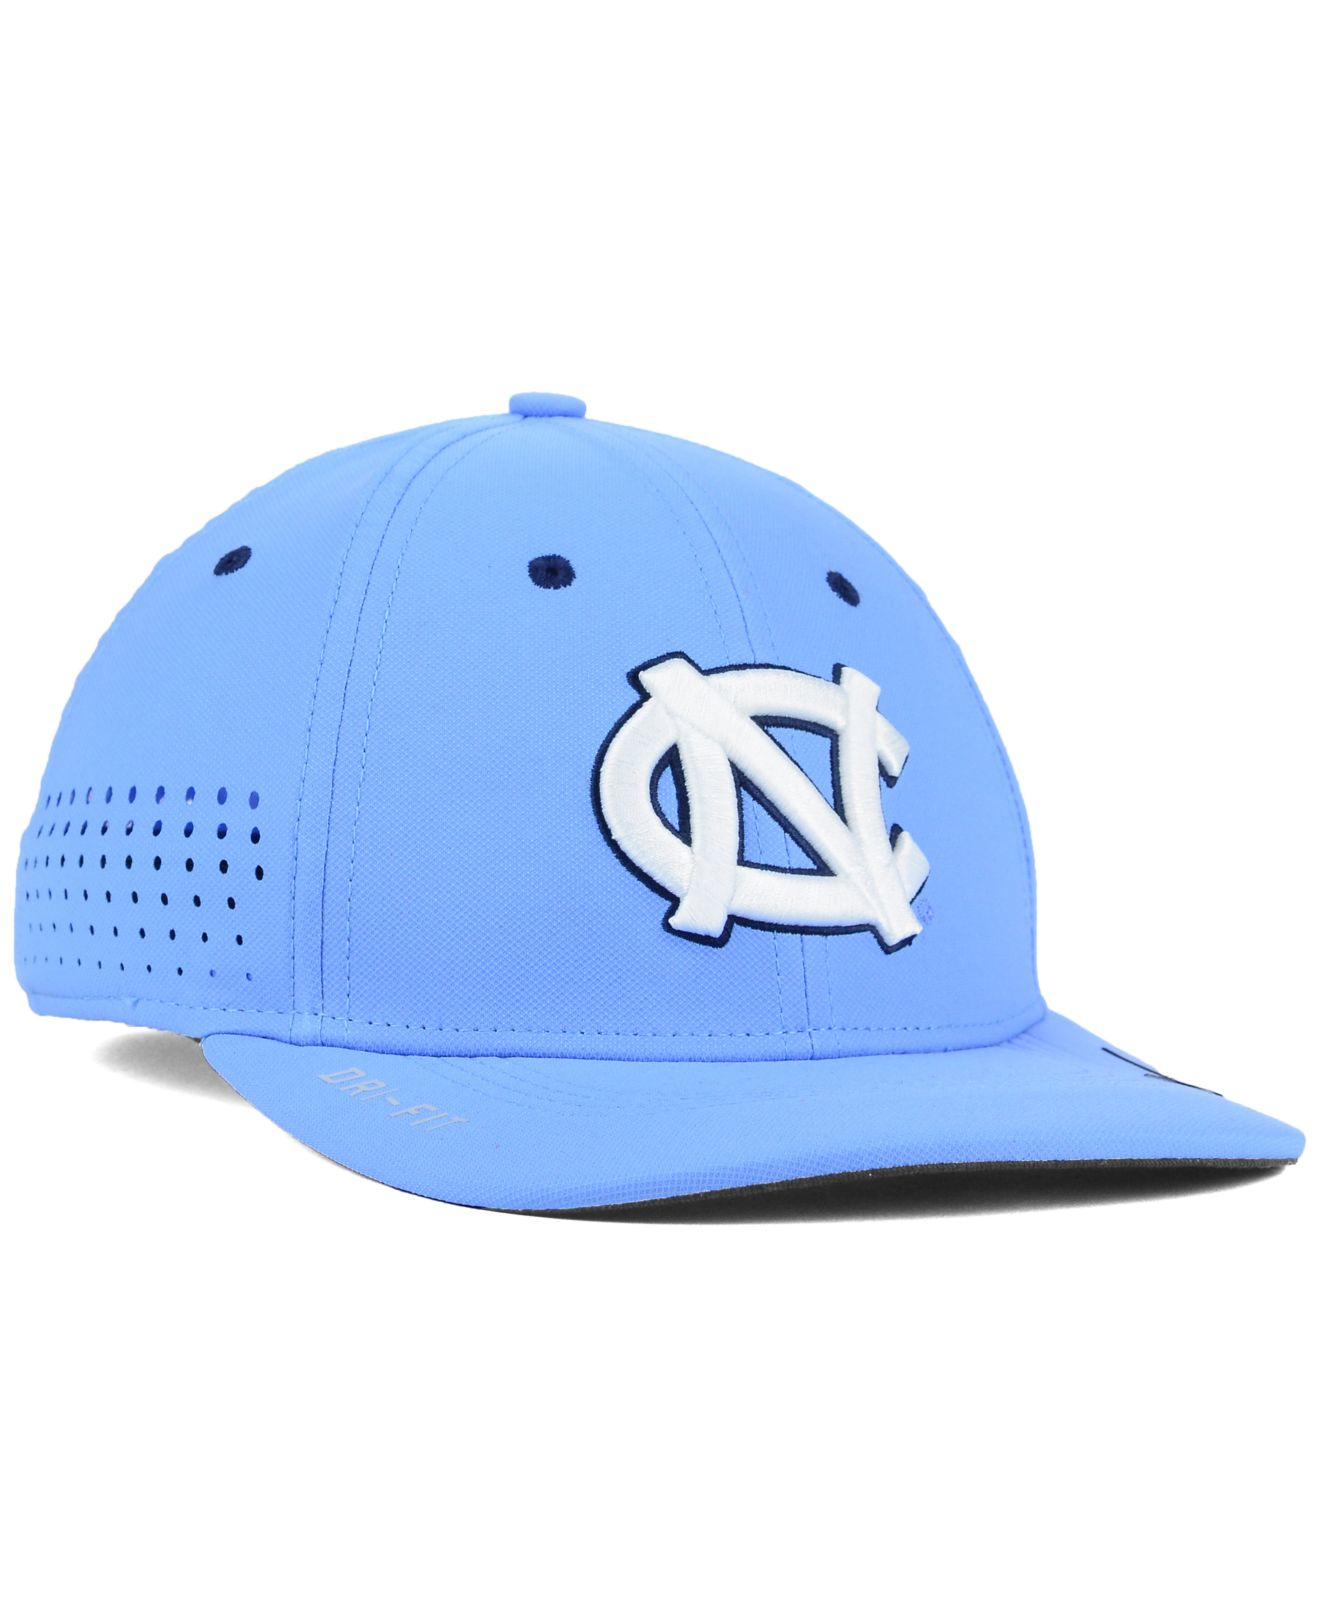 new product 87cce f8943 ... swoosh flex hat c1f8c 221b3  reduced lyst nike north carolina tar heels  sideline cap in blue for men d22fc 2a819